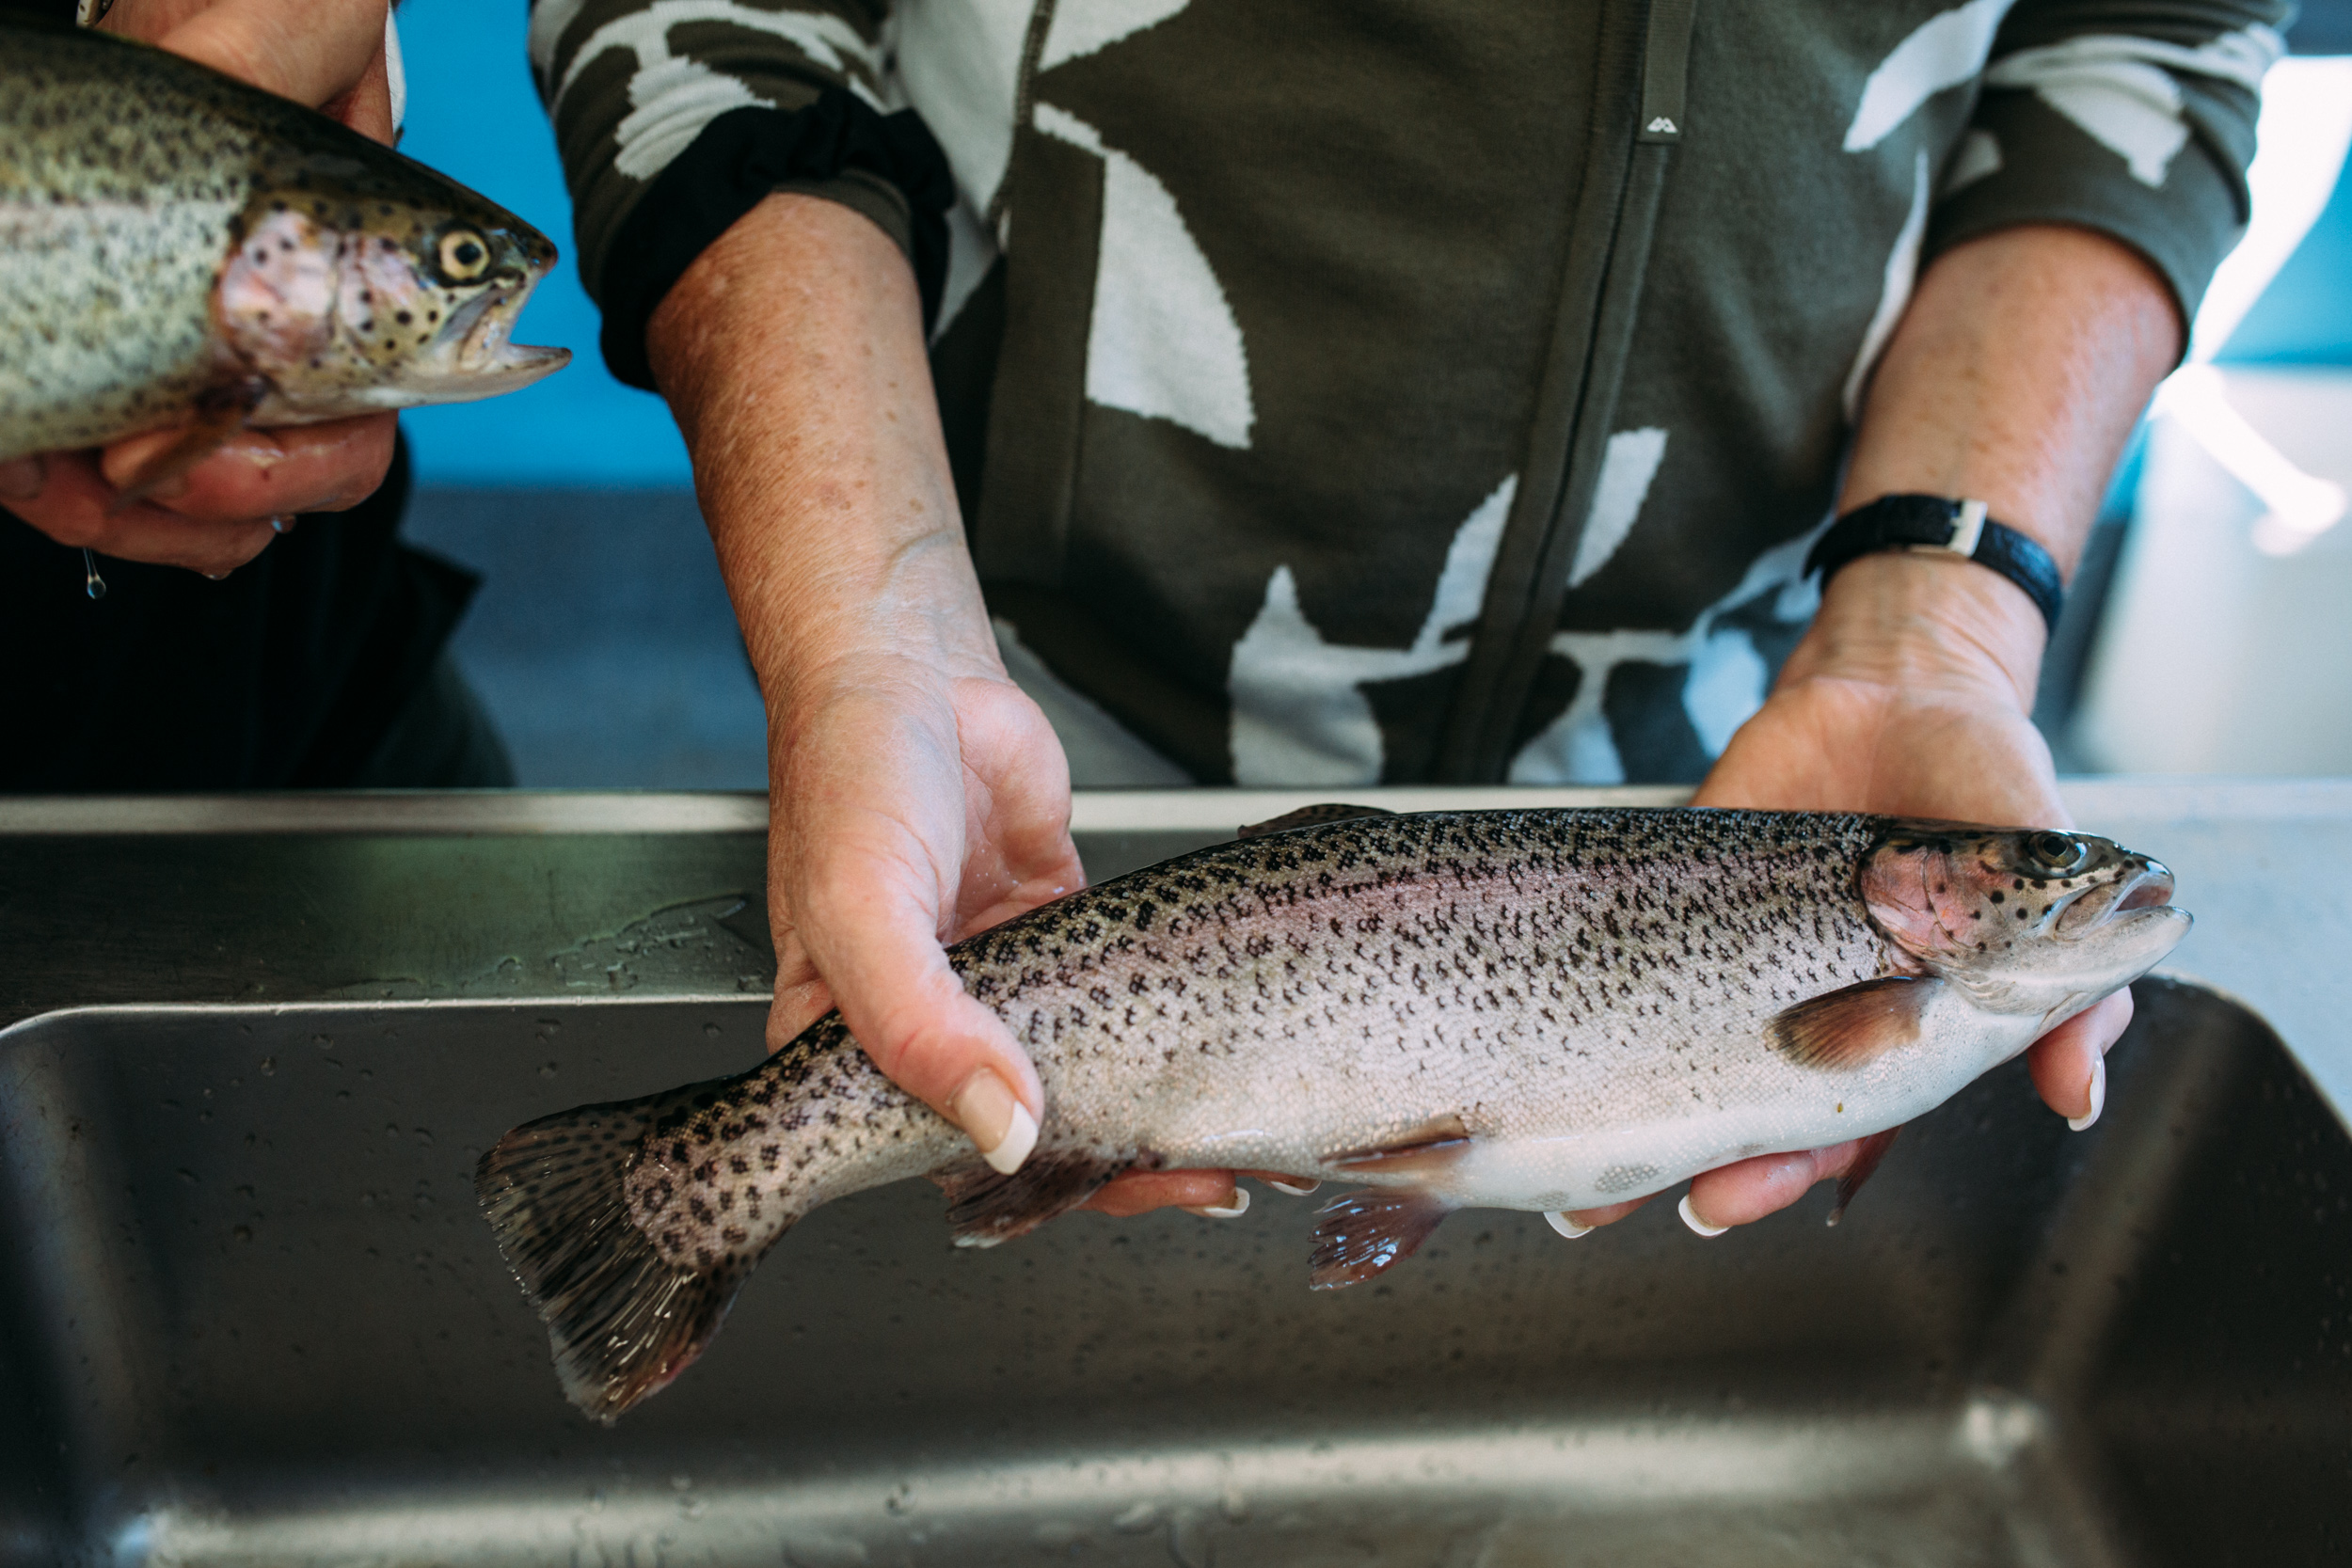 Sally holding a trout, Mountain Fresh Trout and Salmon Farm, Harrietville (Victoria), 2018, Photographer: Catherine Forge.